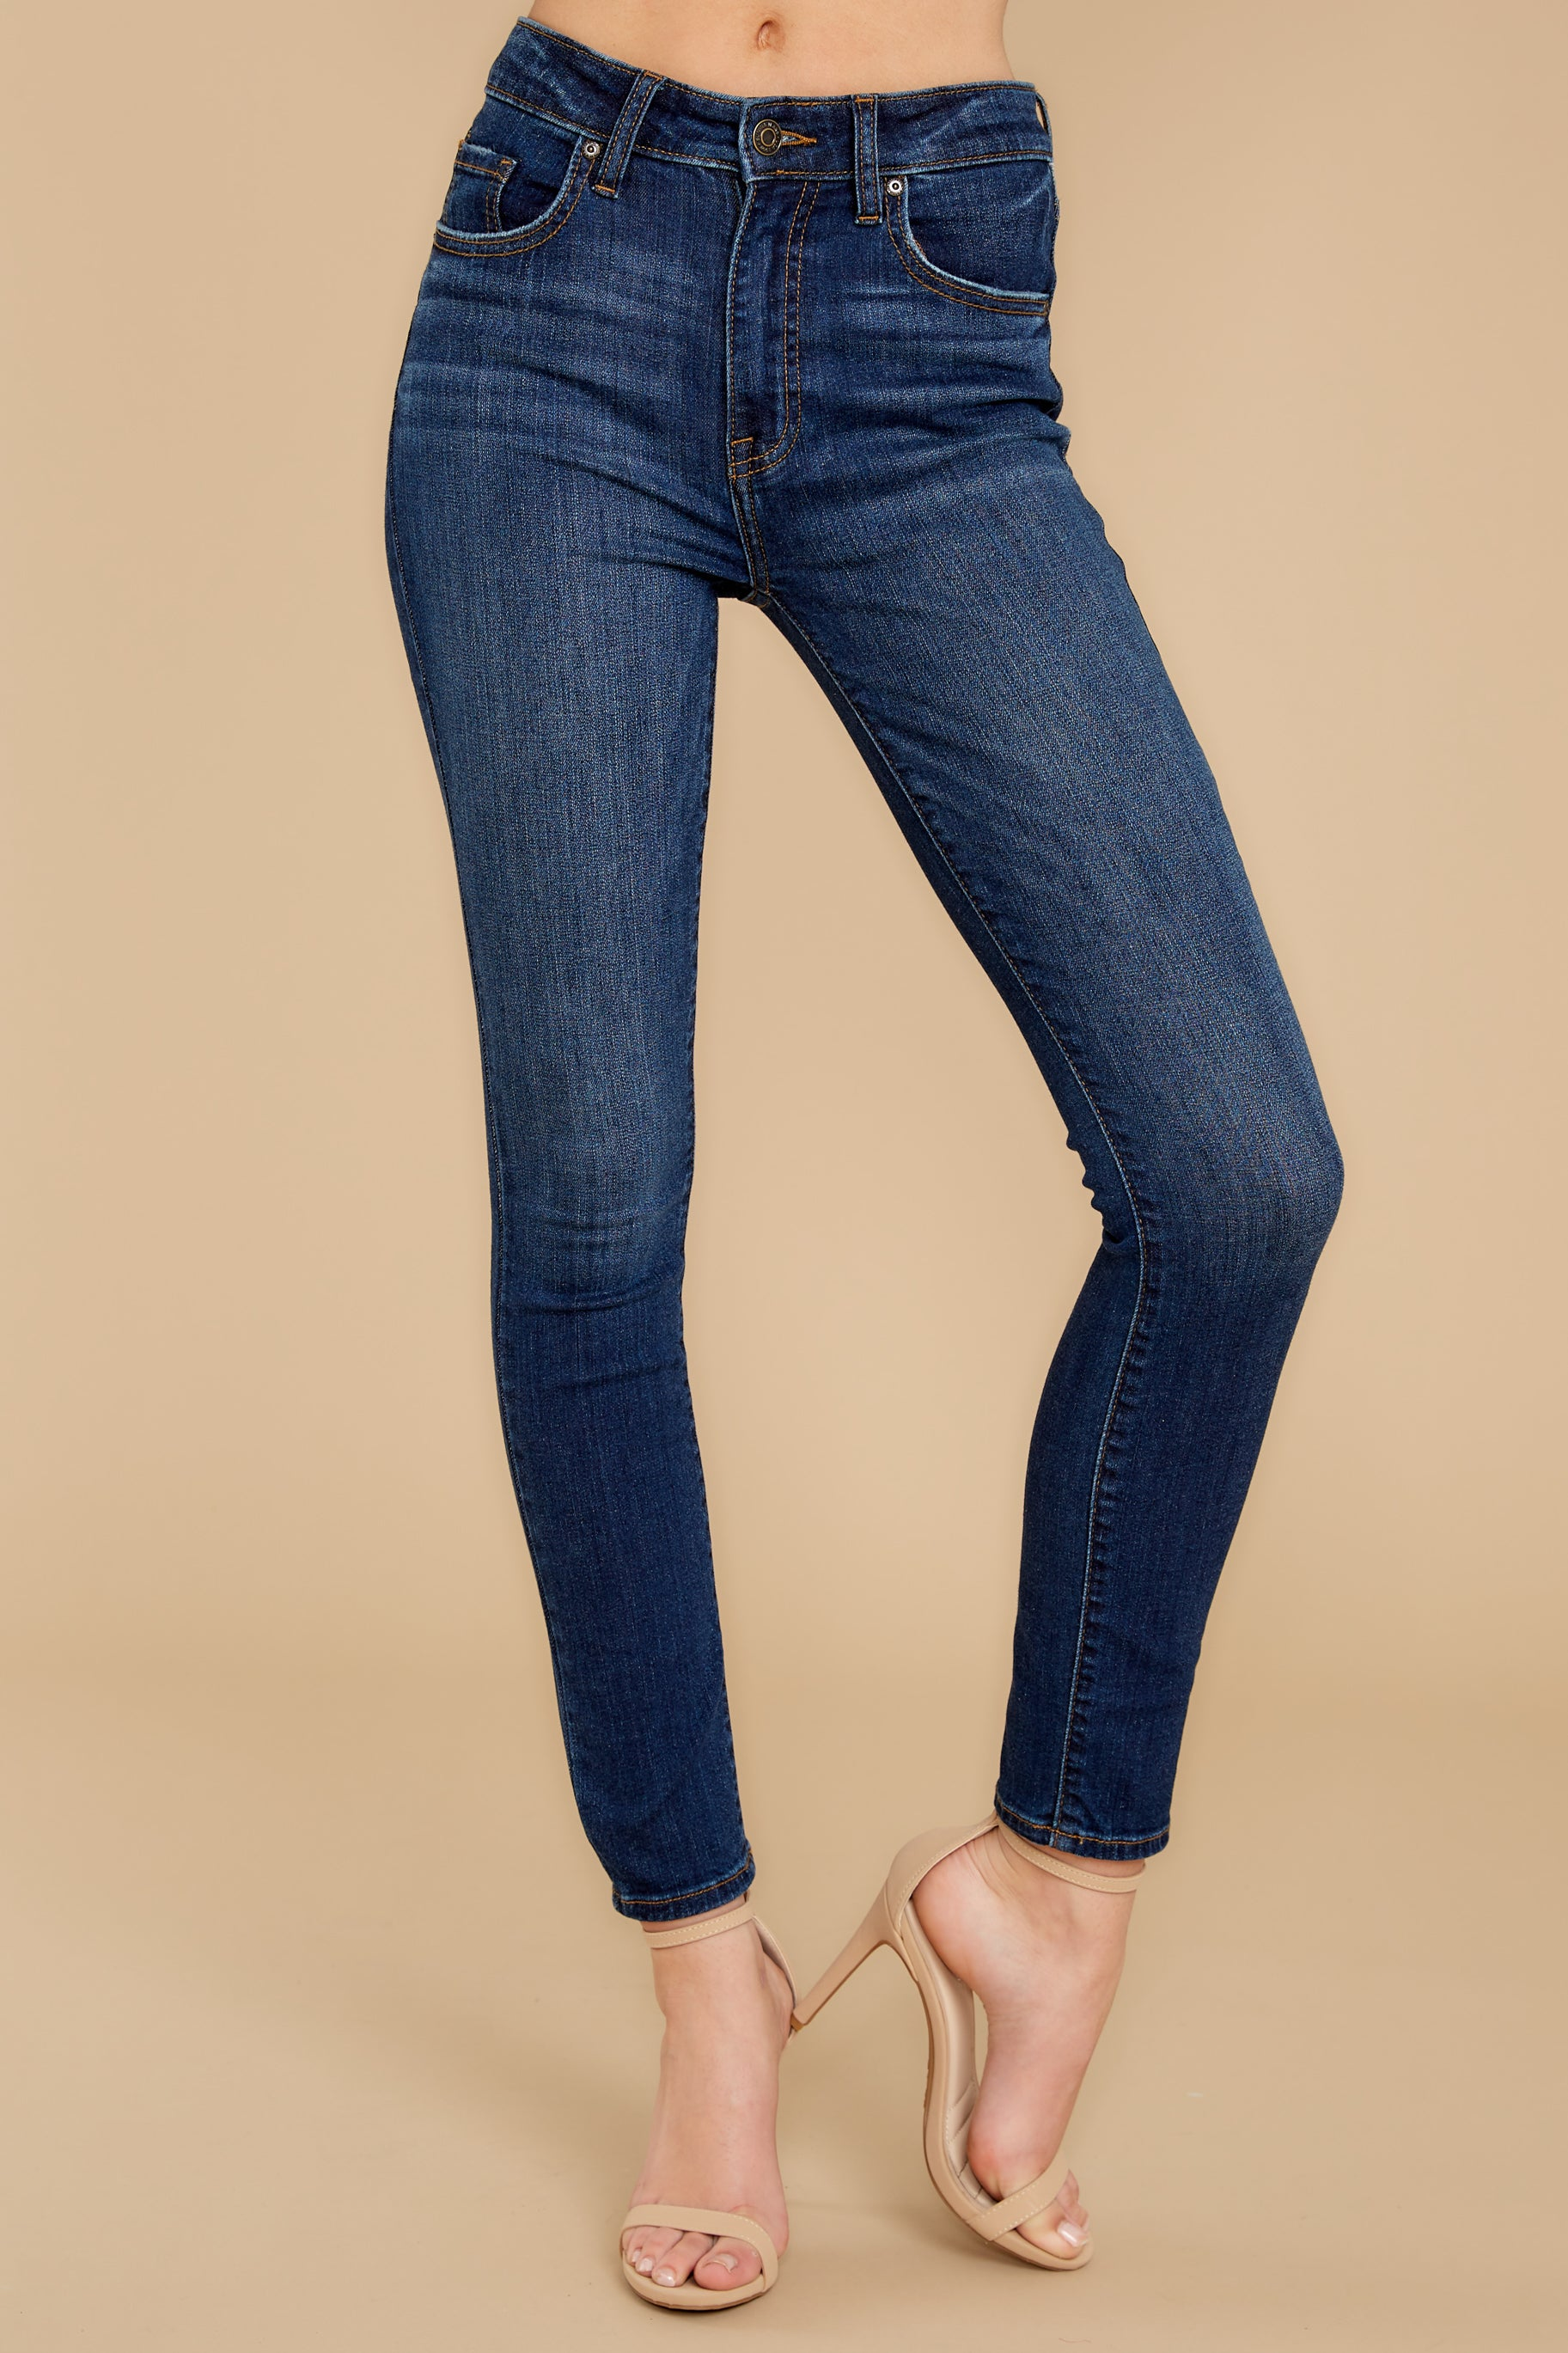 1 For The Win Dark Wash Skinny Jeans at reddressboutique.com